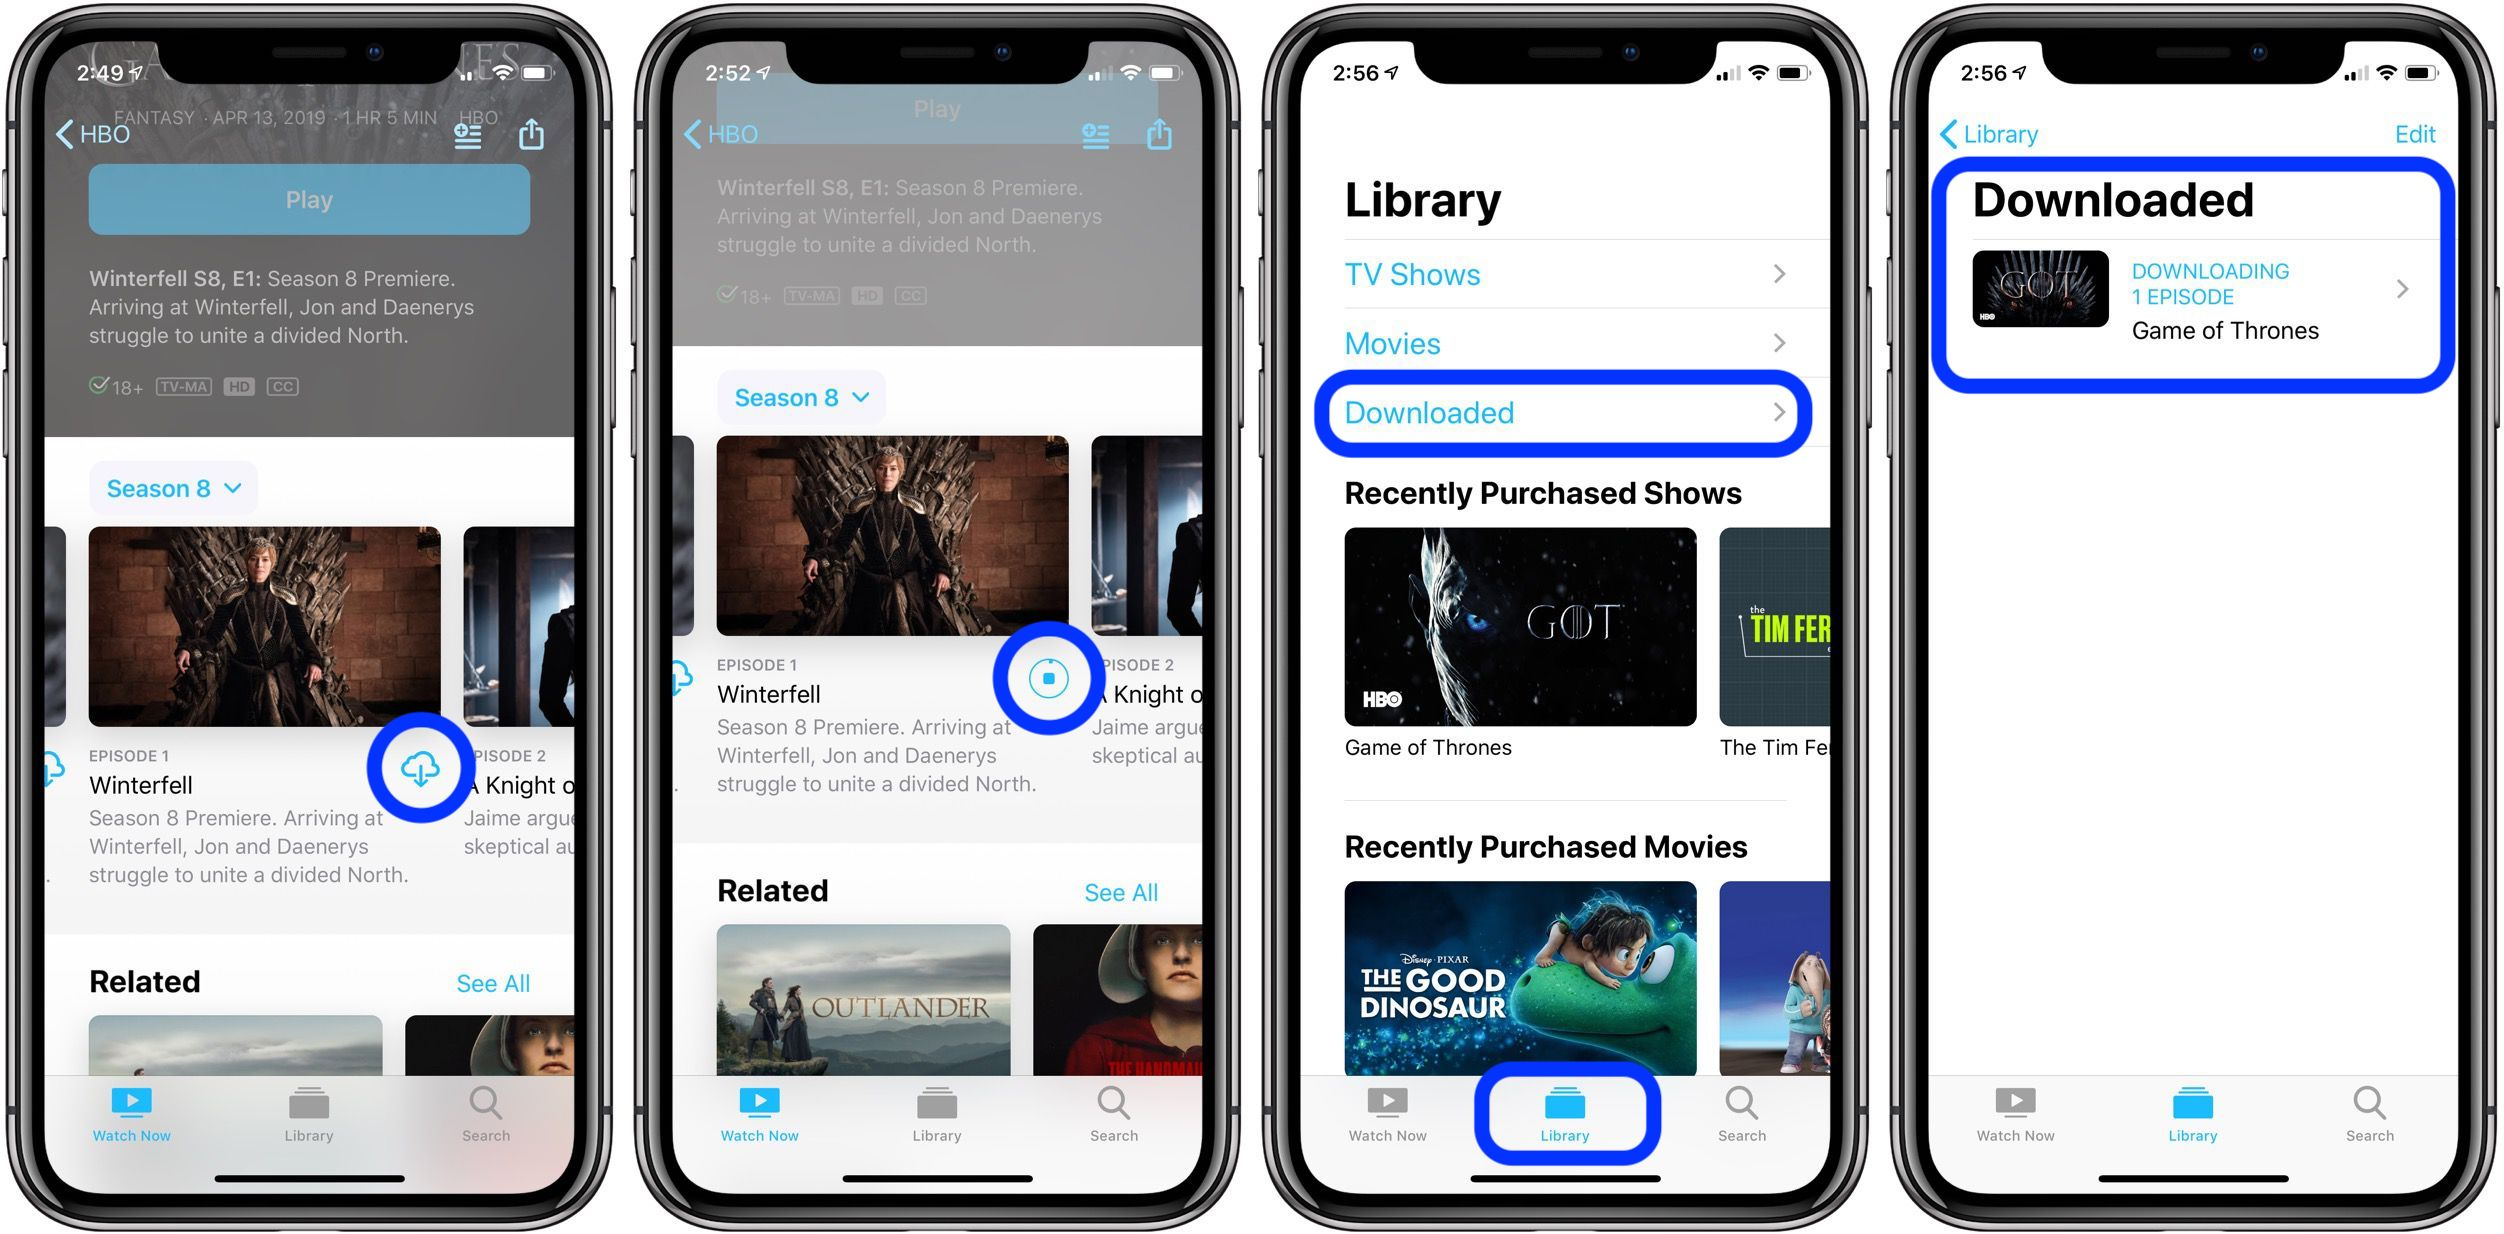 How to download HBO shows for offline use on iPhone and iPad